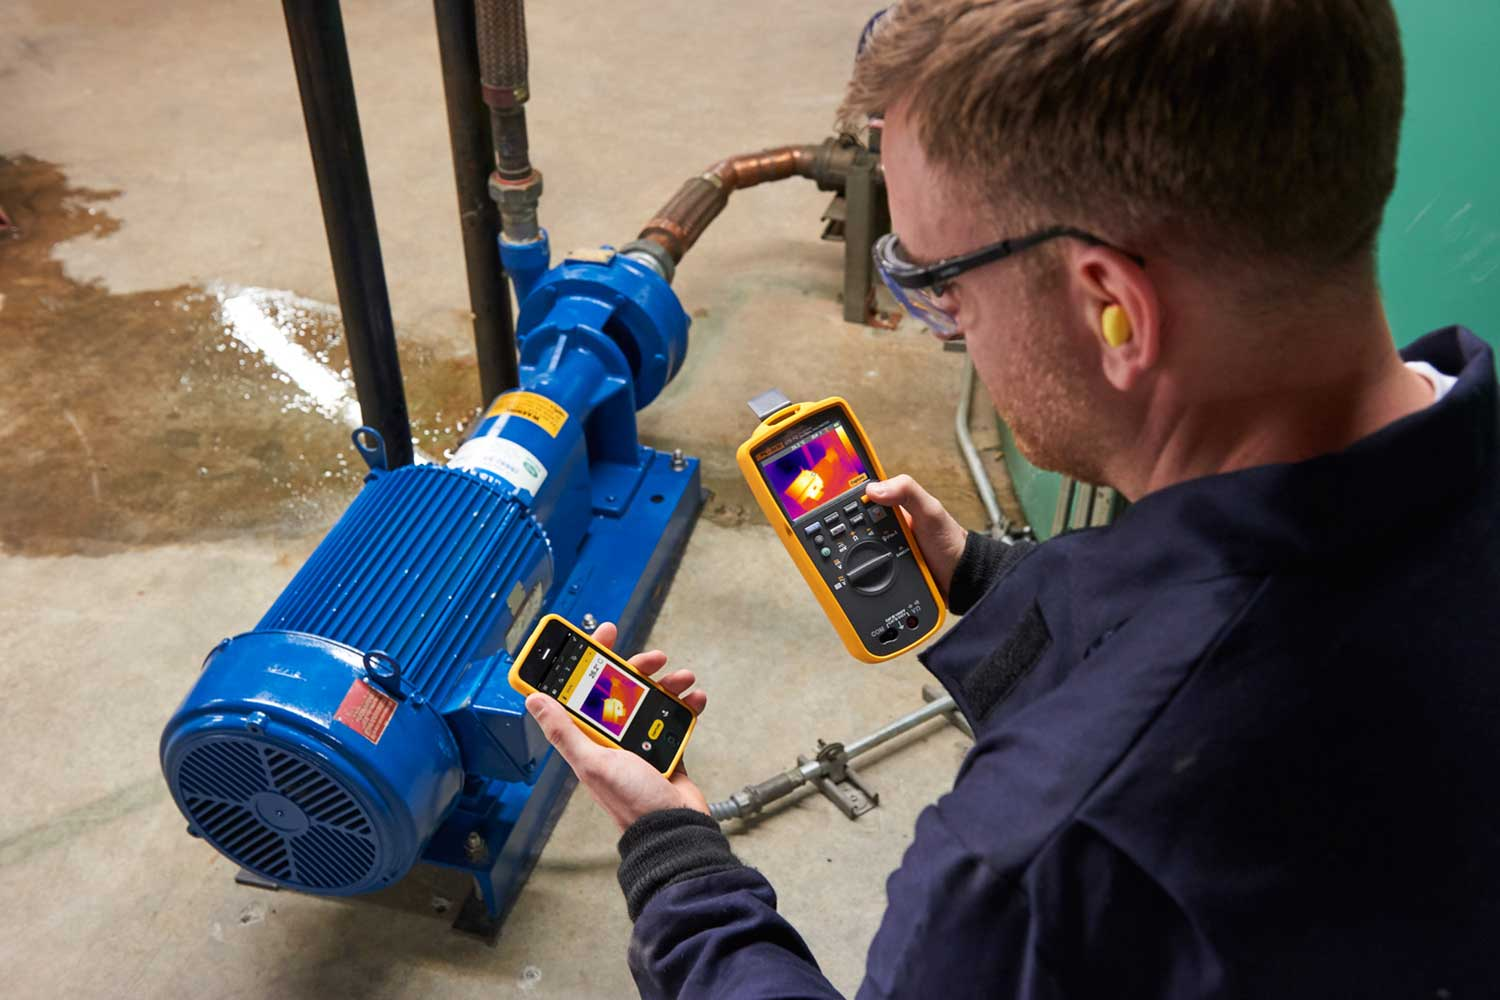 Troubleshooting a pump control panel with the Fluke 279